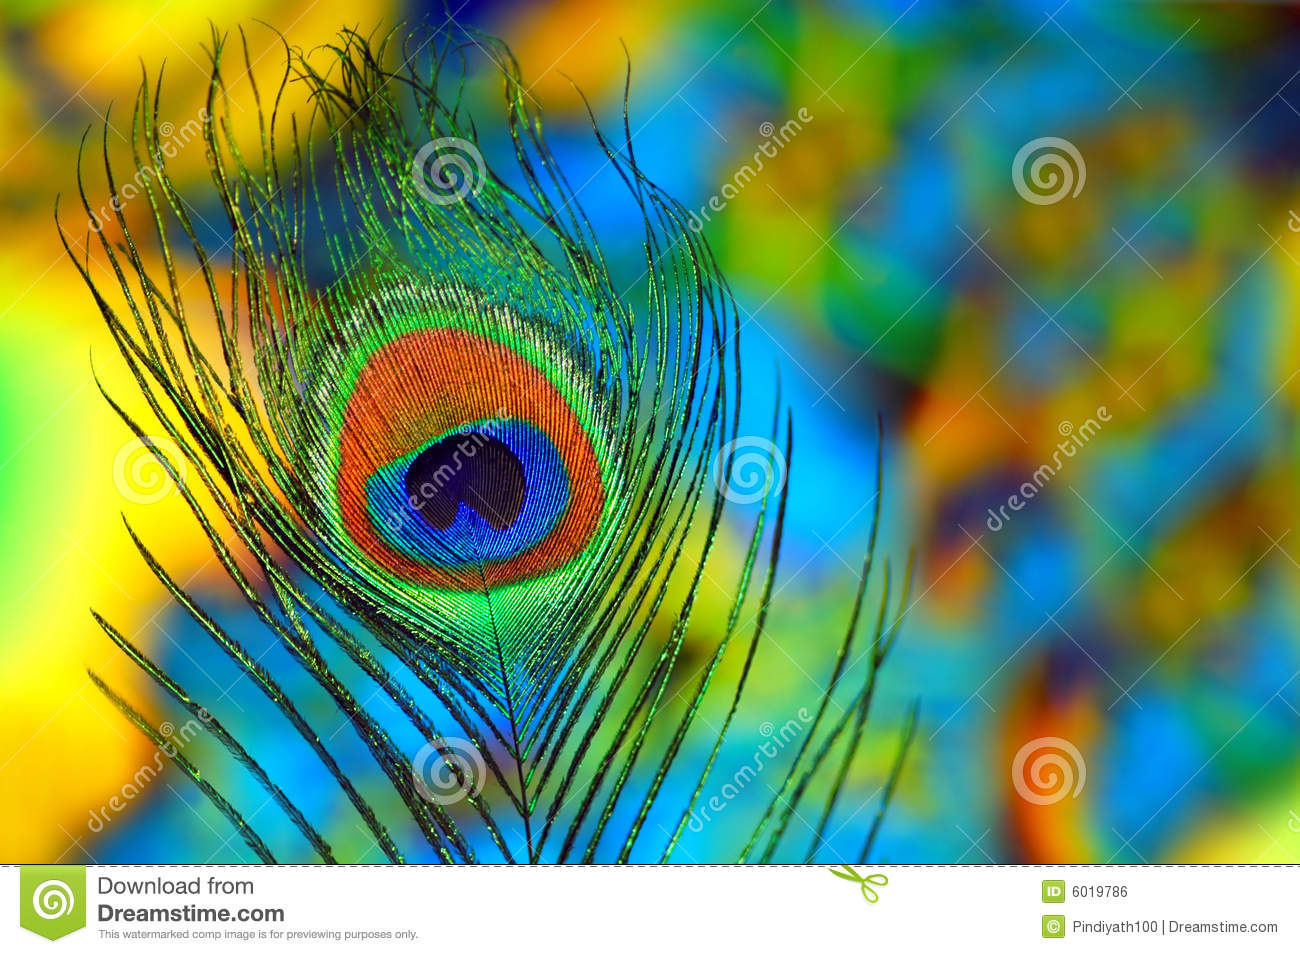 All Over Print Images Stock Photos amp Vectors  Shutterstock